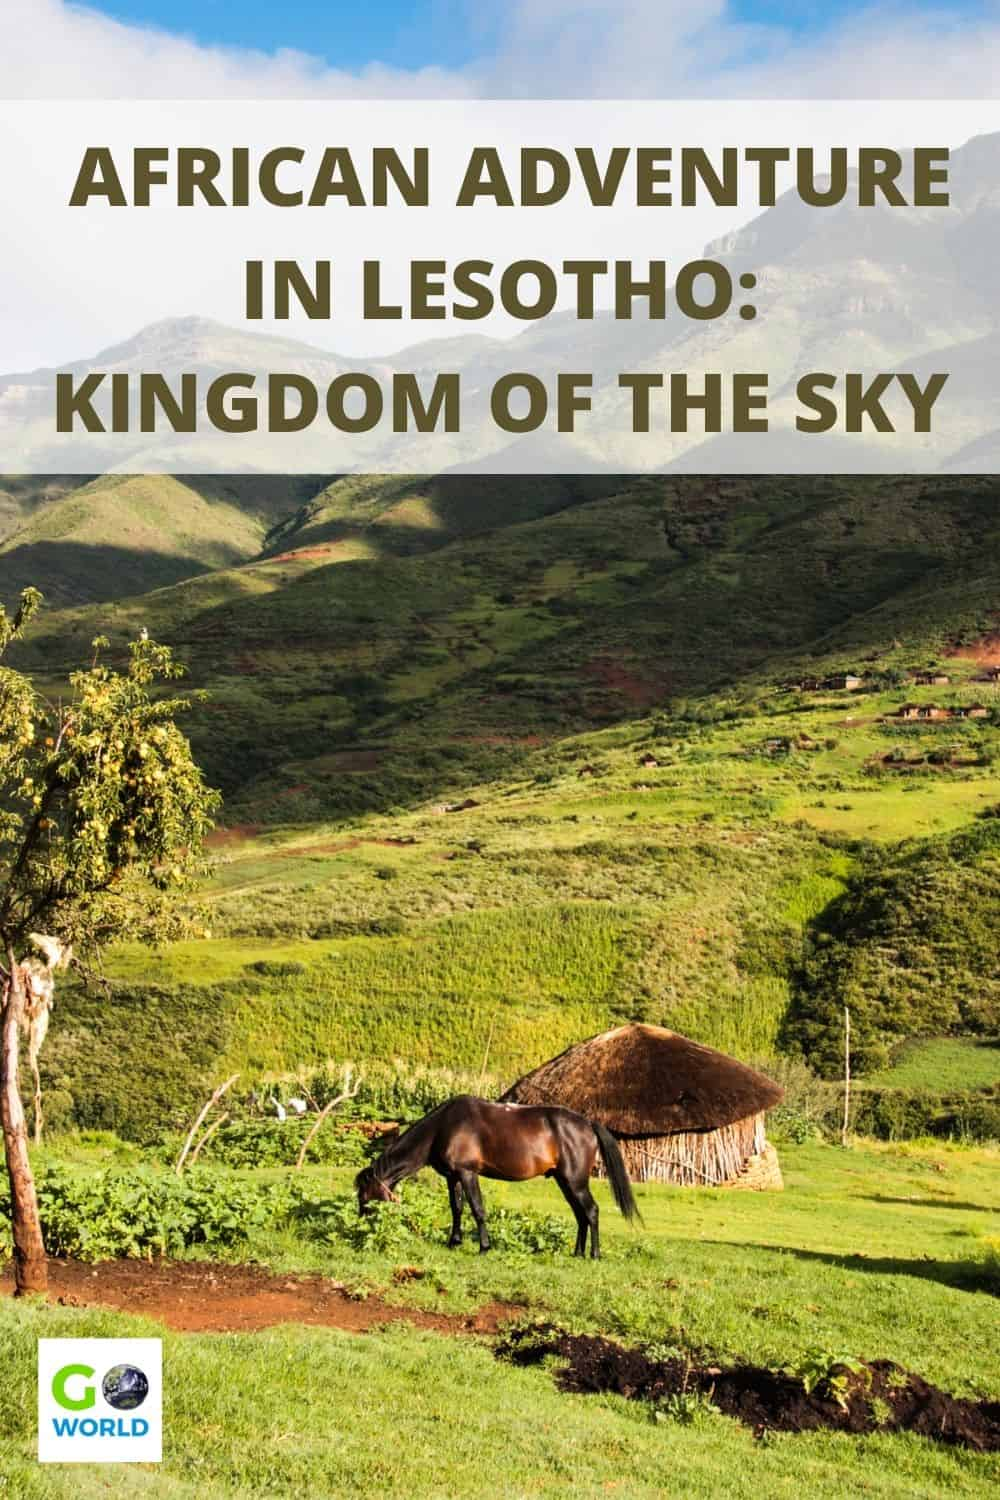 If you're looking for African adventure, a road trip to Lesotho (Kingdom in the Sky) will fulfill your adventurous goals on land and in water. #travelinafrica #adventureinafrica #africanroadtrip